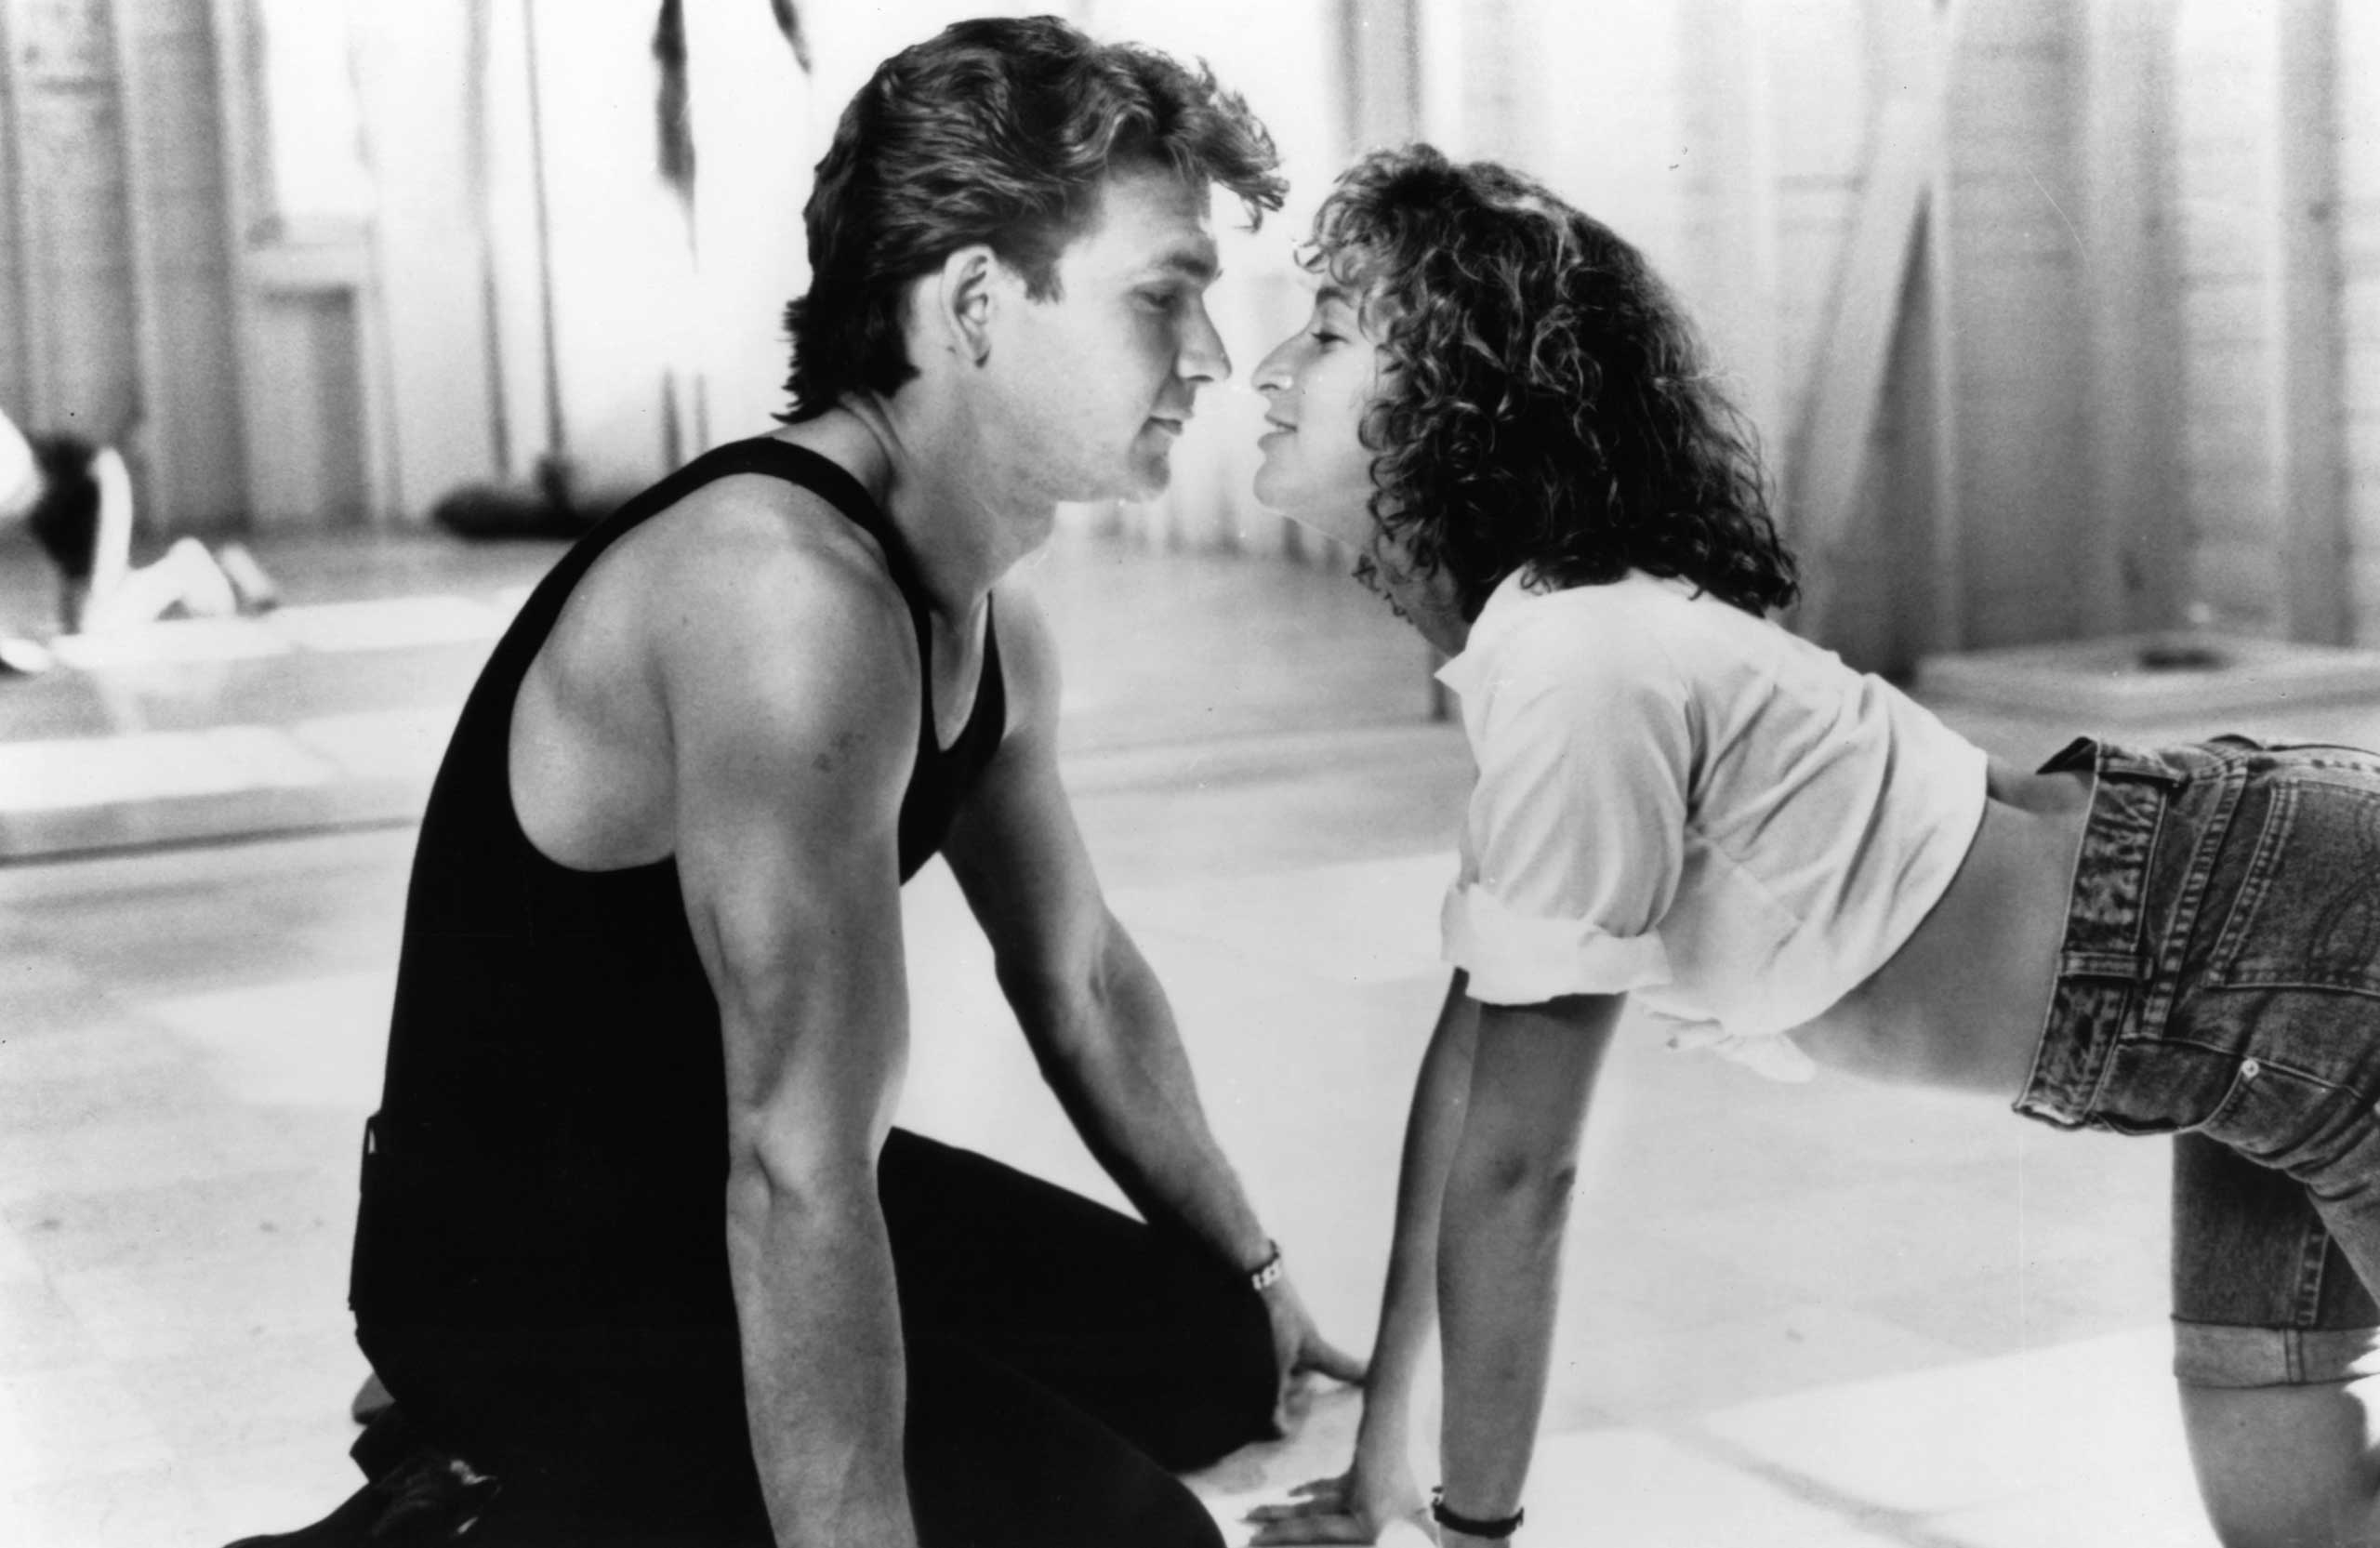 <strong>Frances 'Baby' Houseman and Johnny Castle - <i>Dirty Dancing</i>, 1987</strong>